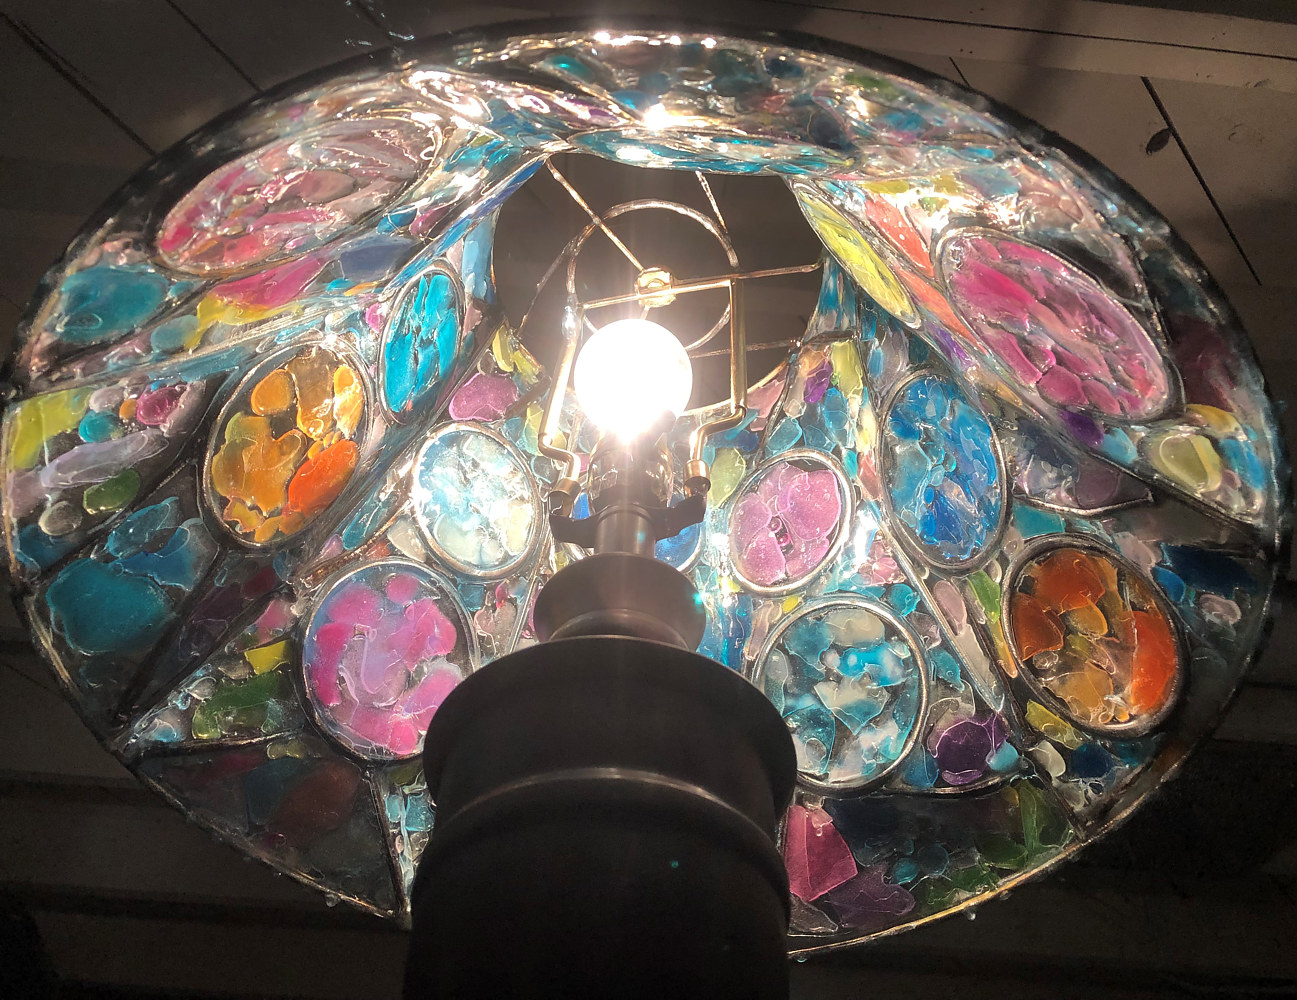 Lampshade Redux #3 (under with lamp) by Steven Simmons